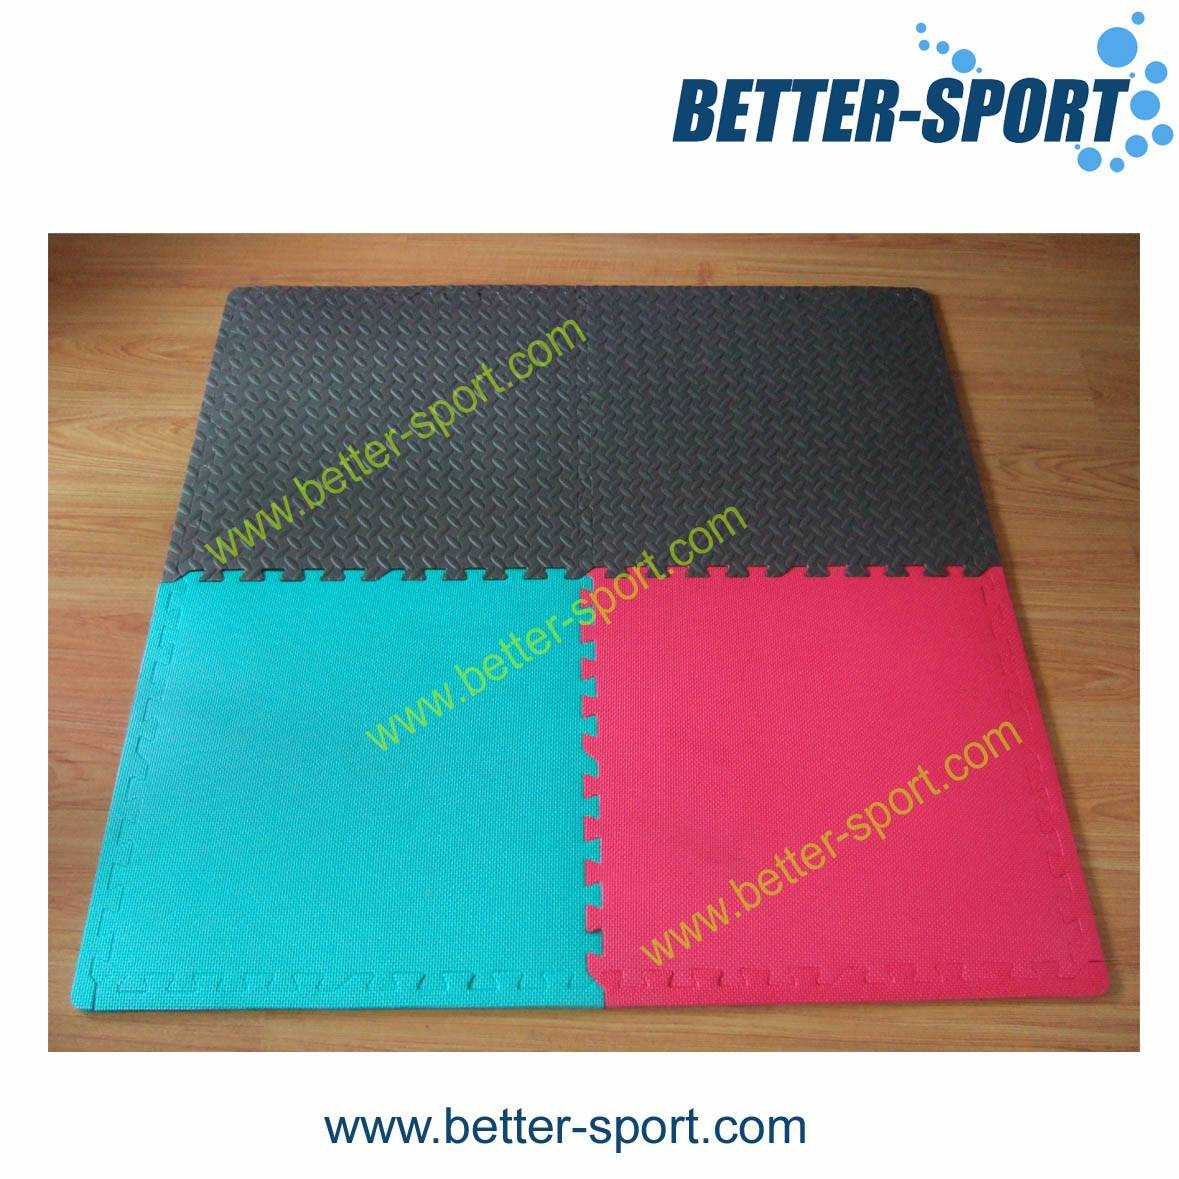 Karate Mat, Tatami Mat, Exercise Mat